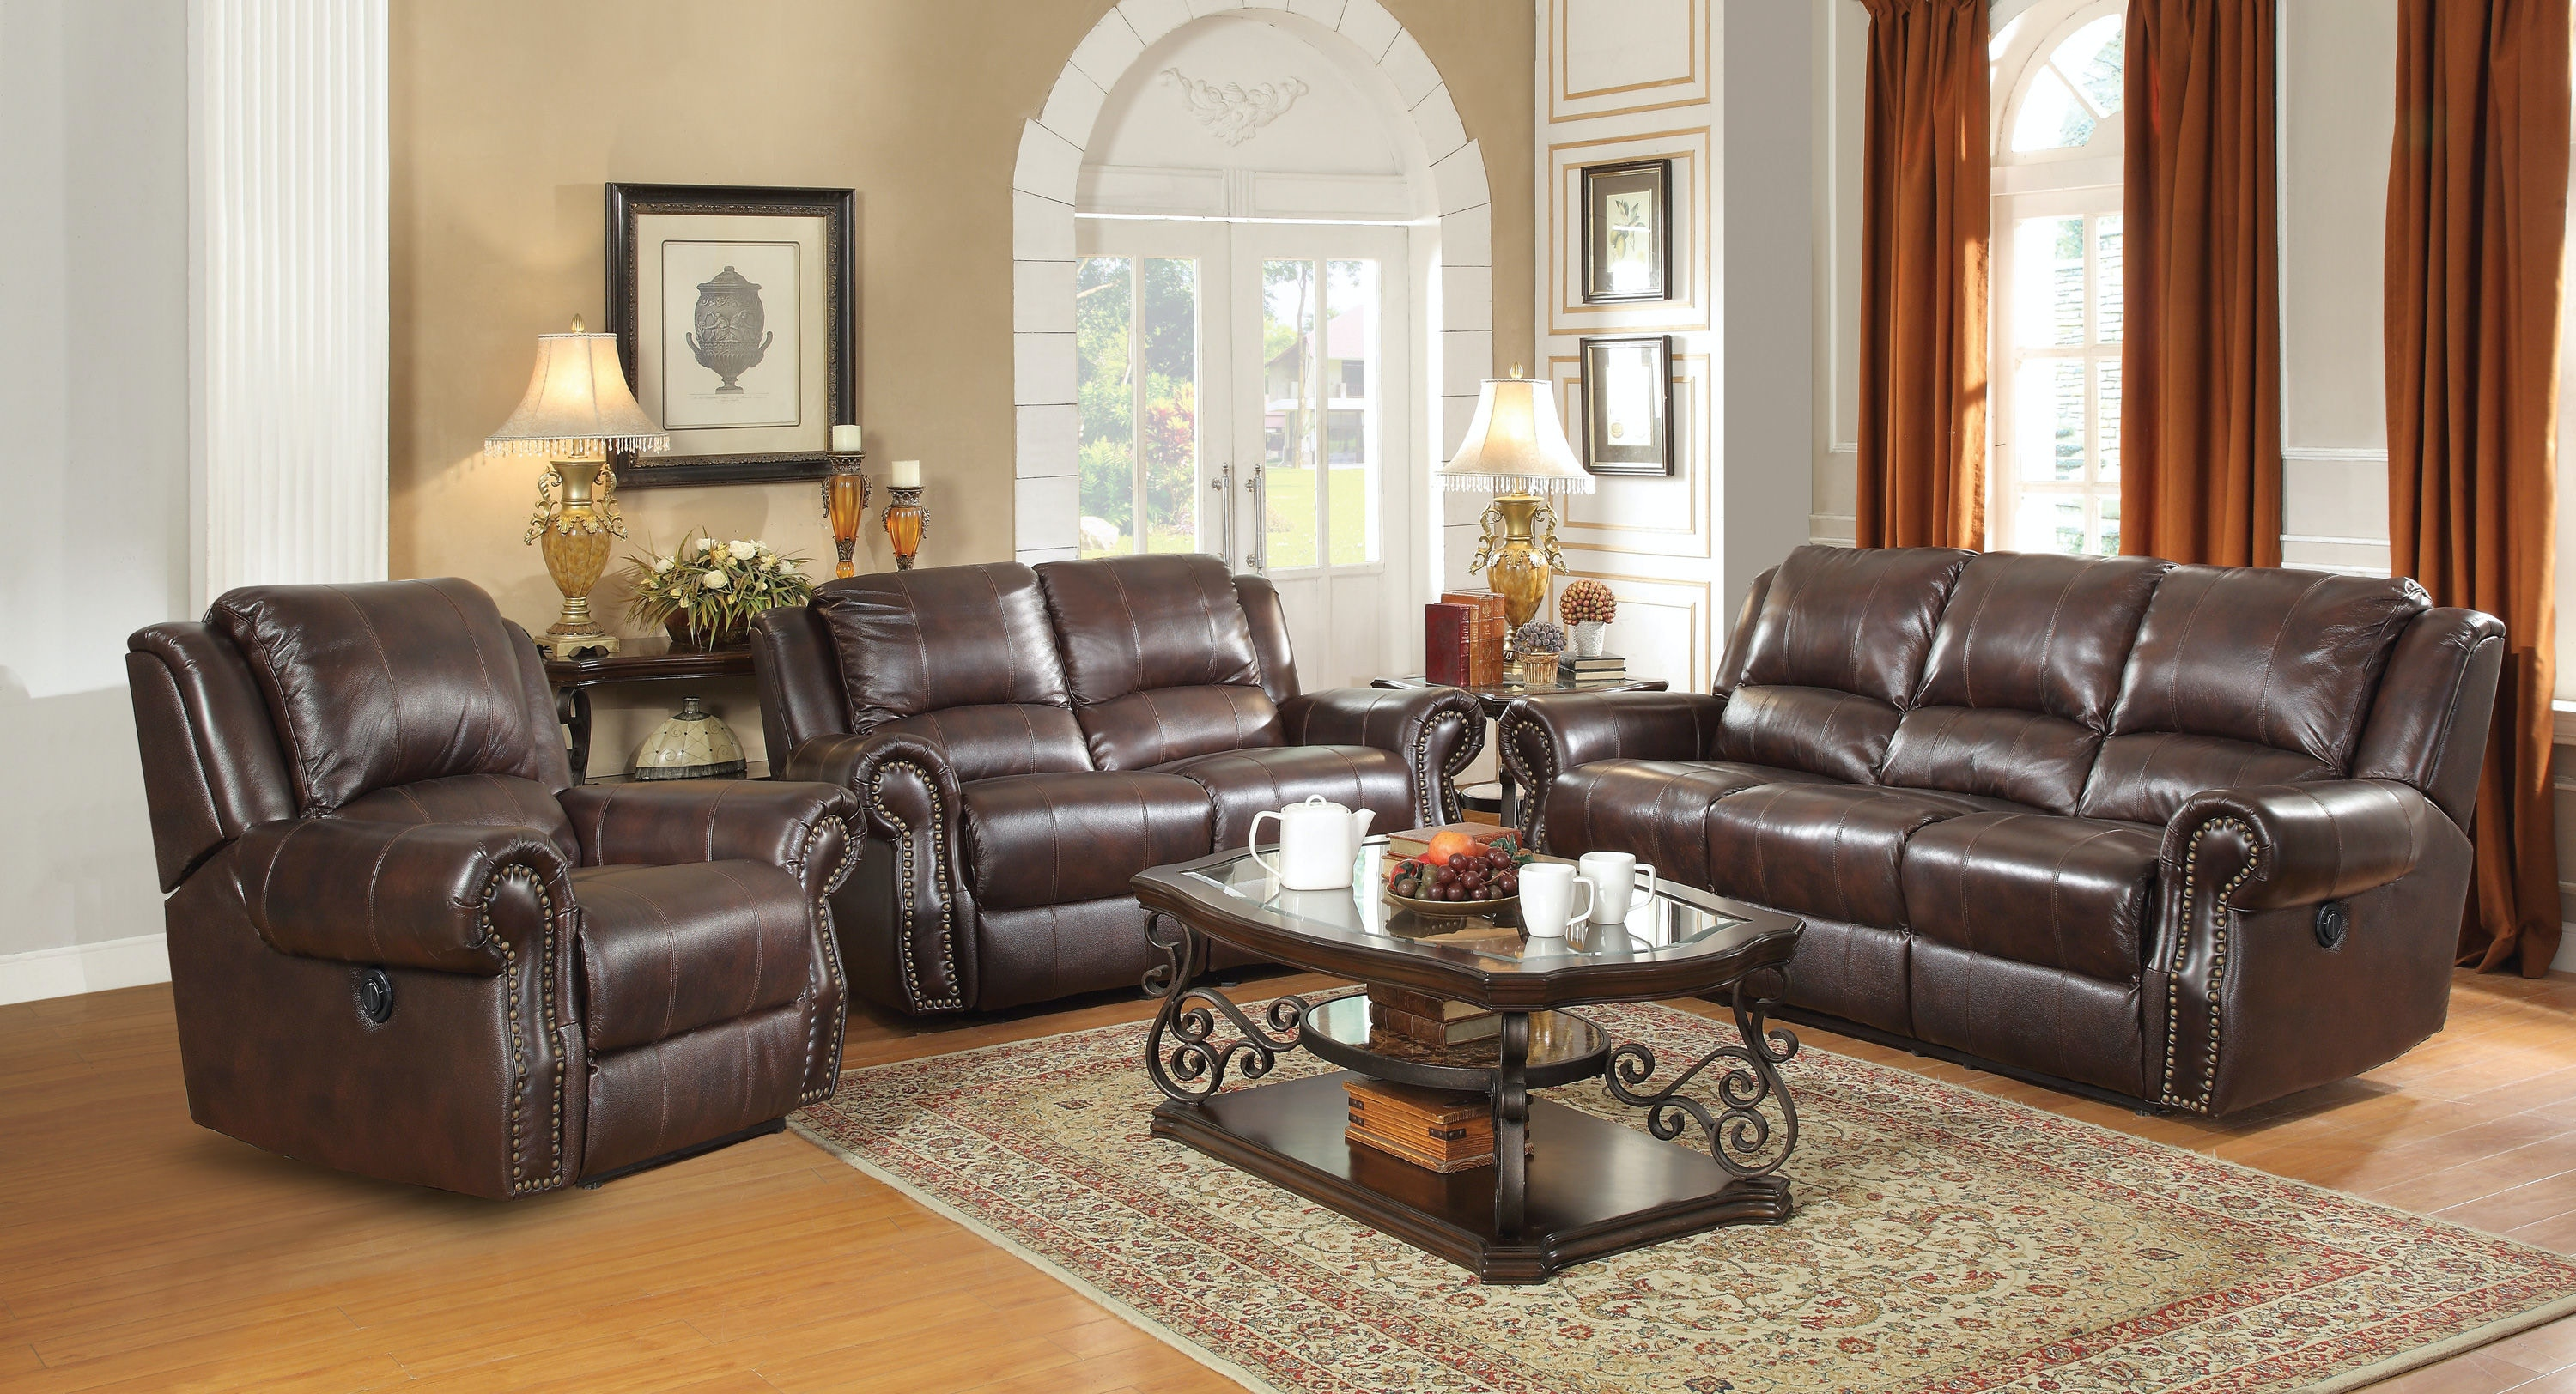 Living Room Furniture Hickory Nc coaster living room motion sofa 650161 | hickory furniture mart